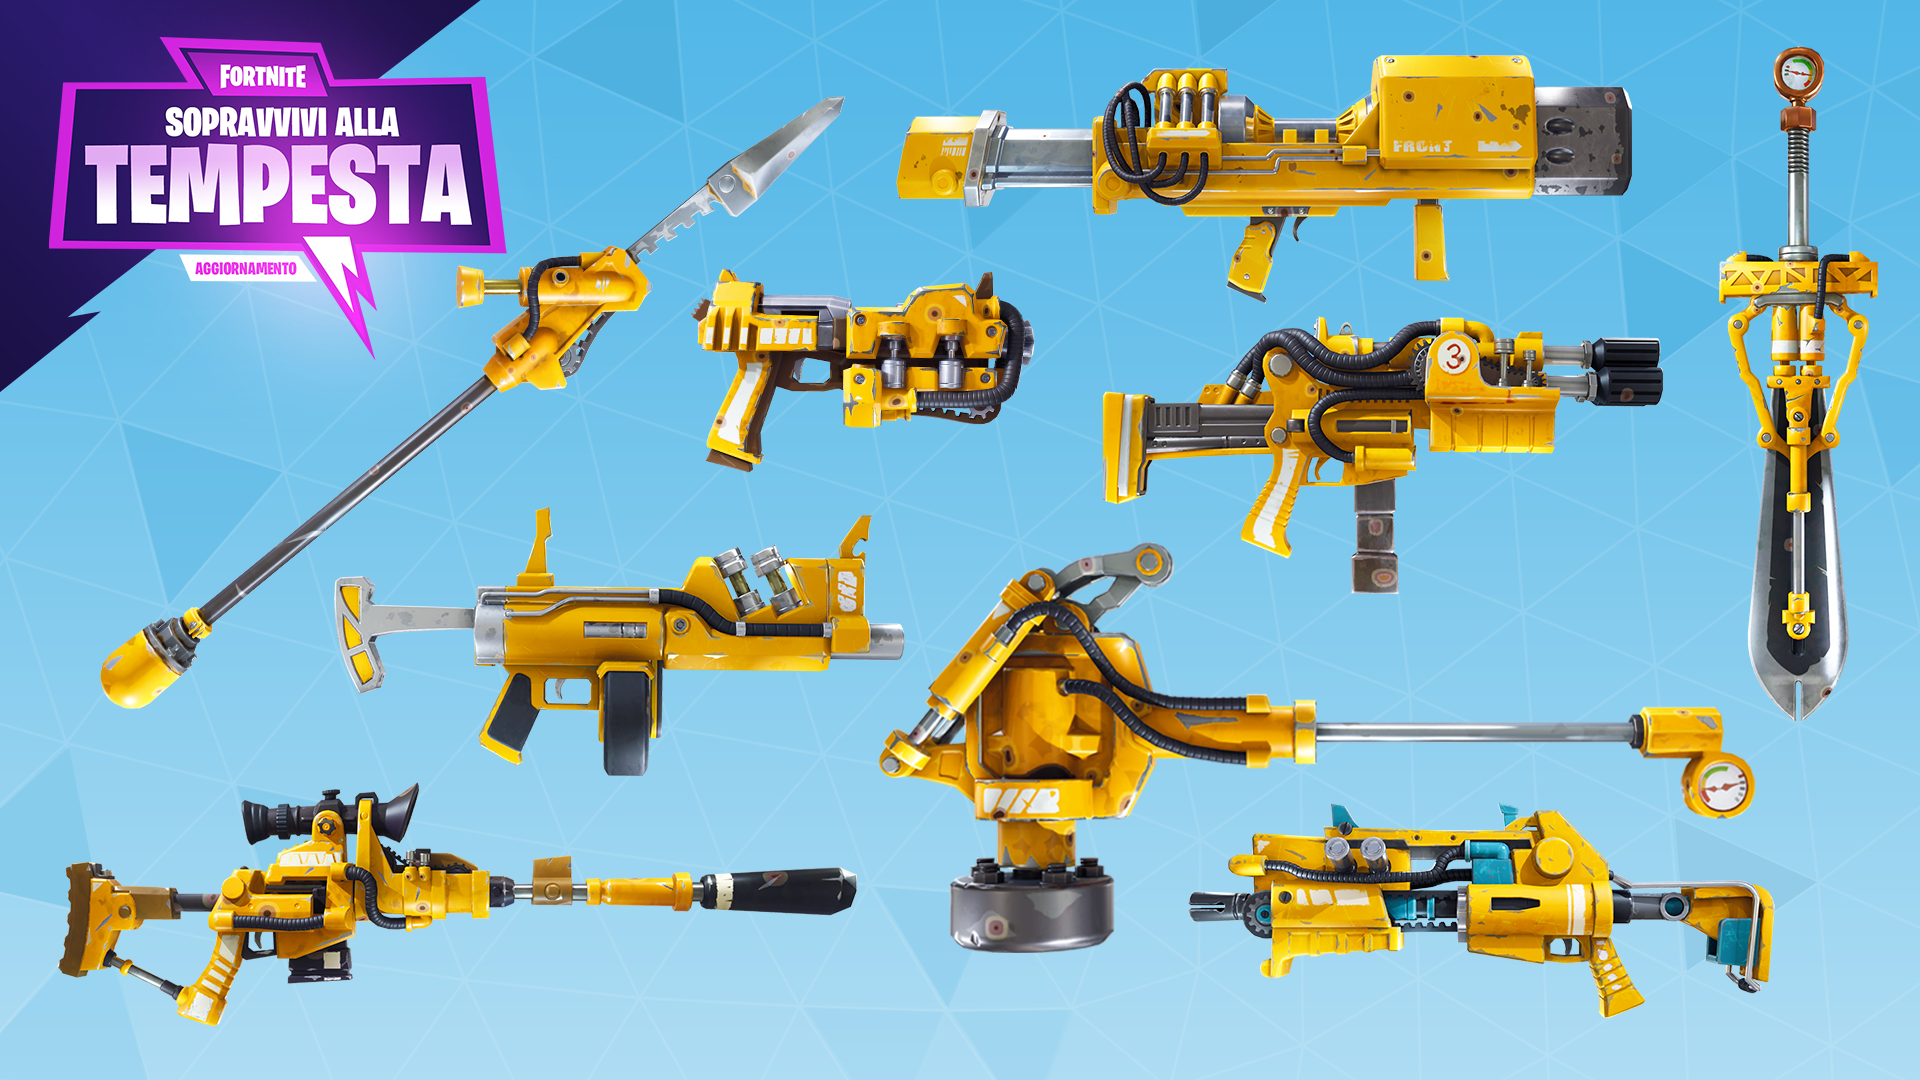 Fortnite%2Fblog%2Fsurvive-the-storm---release-notes%2FIT_Hydraulic-Weapons-1920x1080-91c72f7677549efe34e30b01b3494a25d817aa98